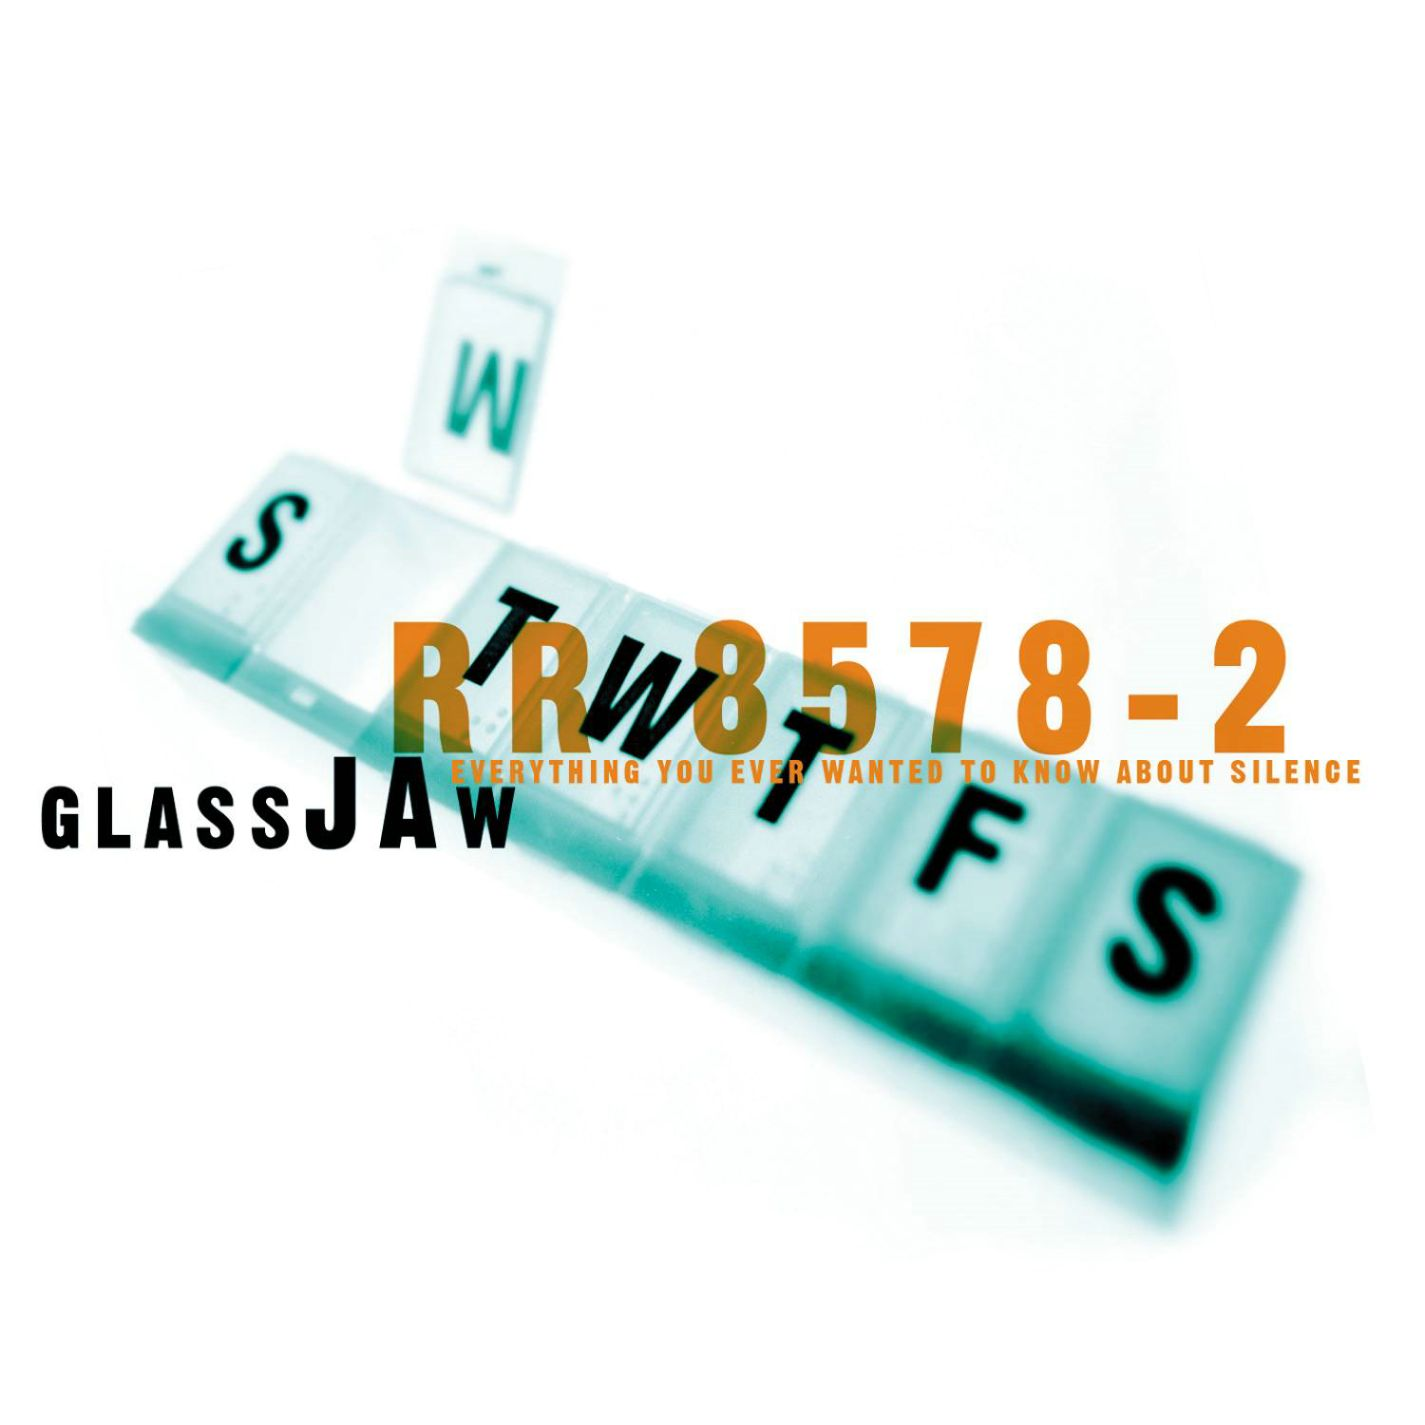 glassjaw-everything-you-ever-wanted-to-know-about-silence-album-cover-large